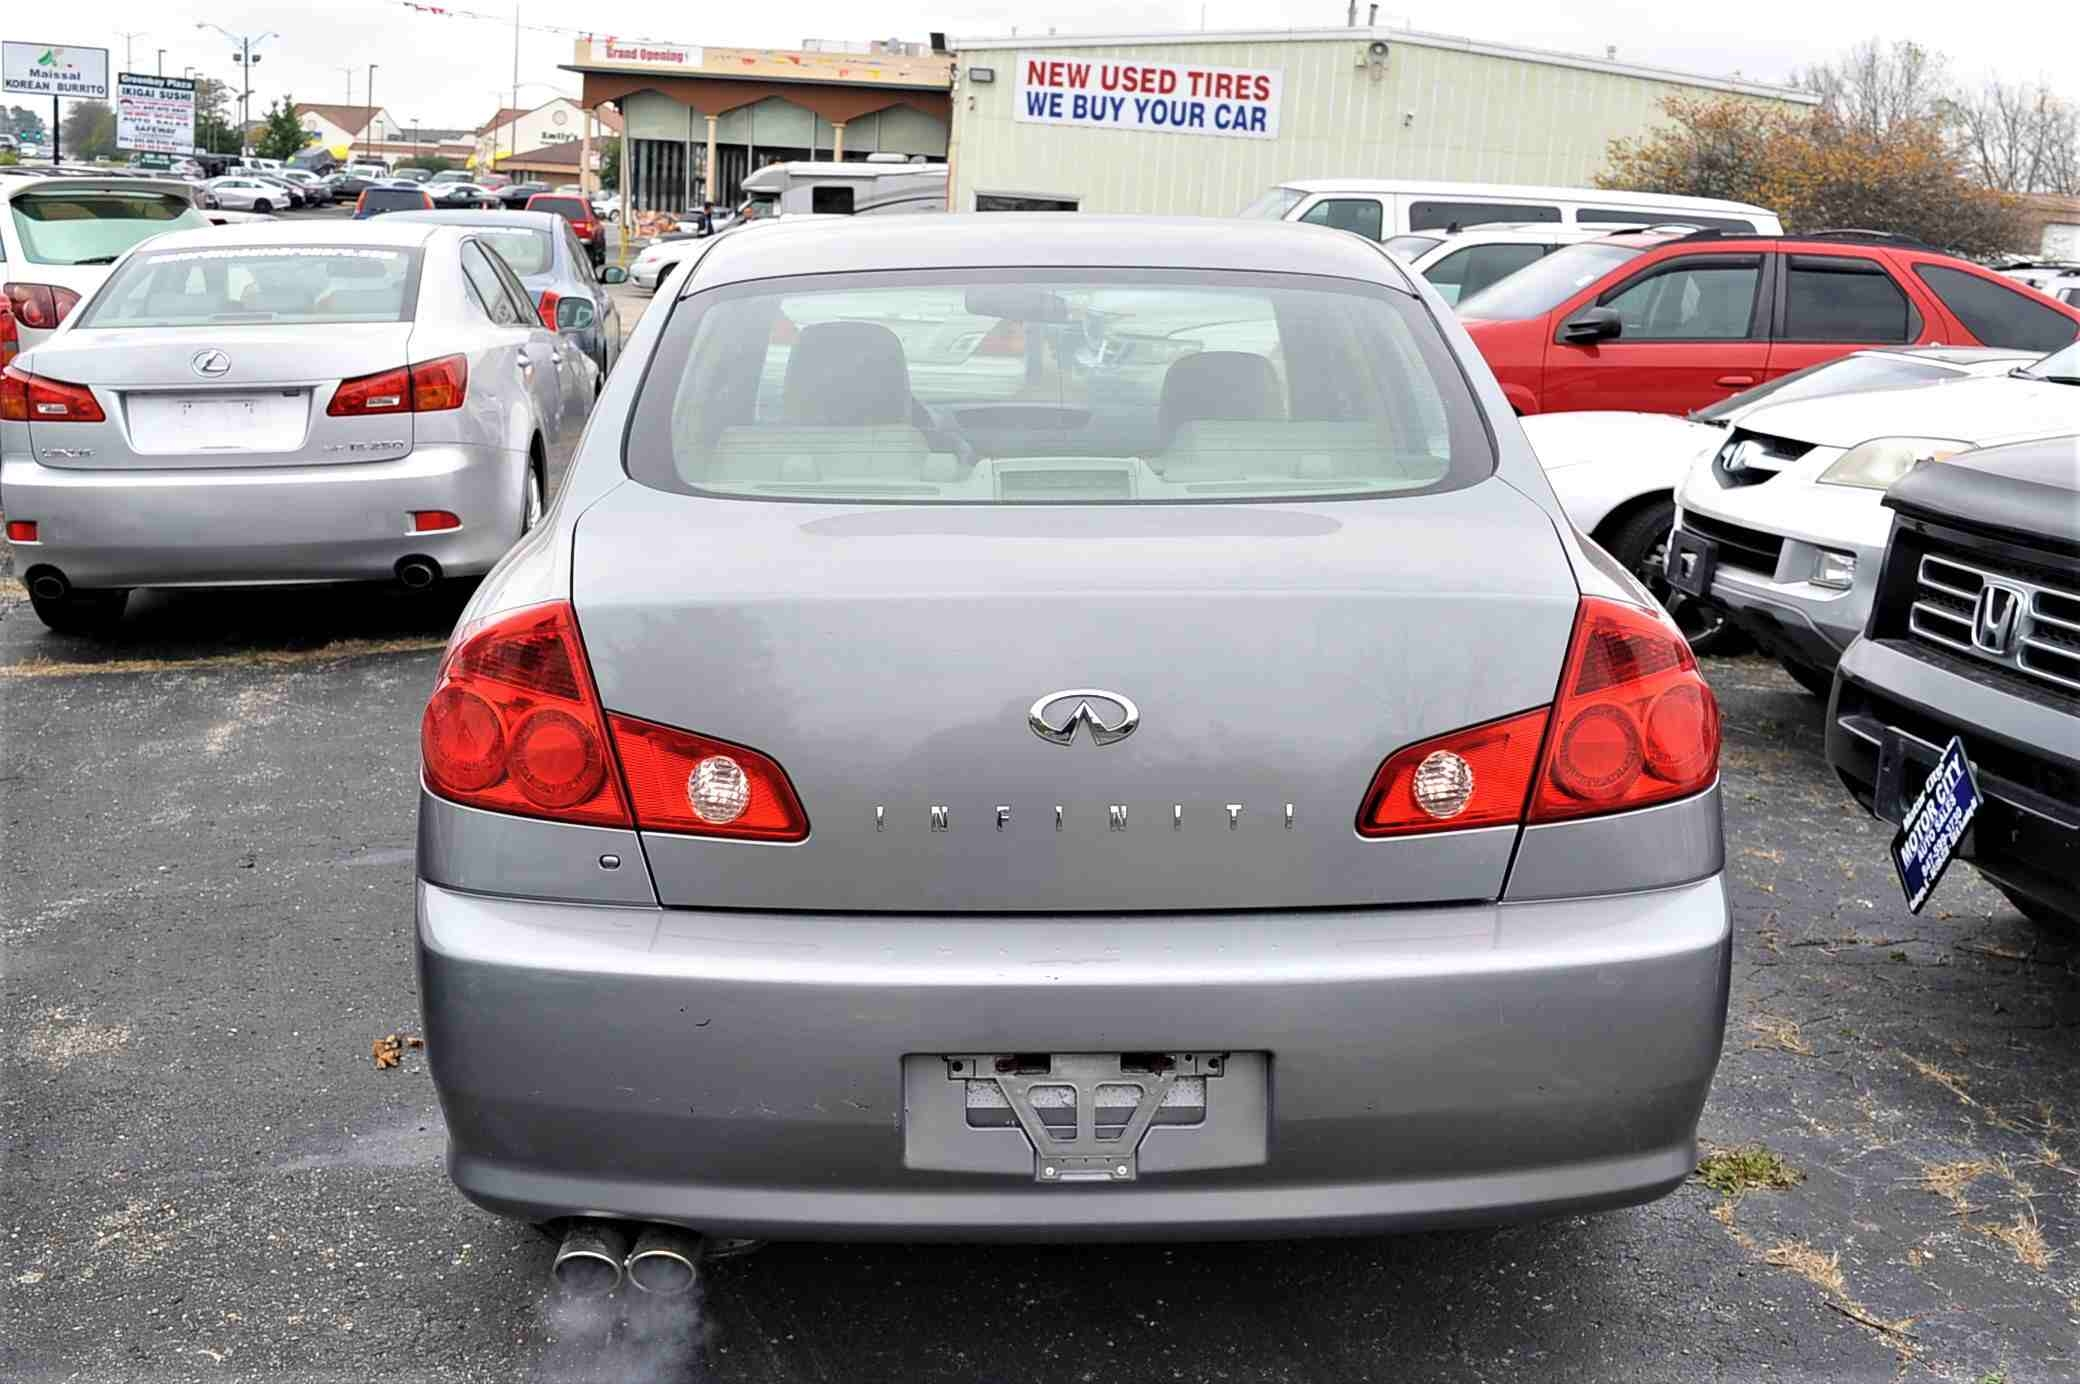 2006 Infiniti G35X Gray Sedan Used Car Sale Fox River Grove Grayslake Volo Waucanda